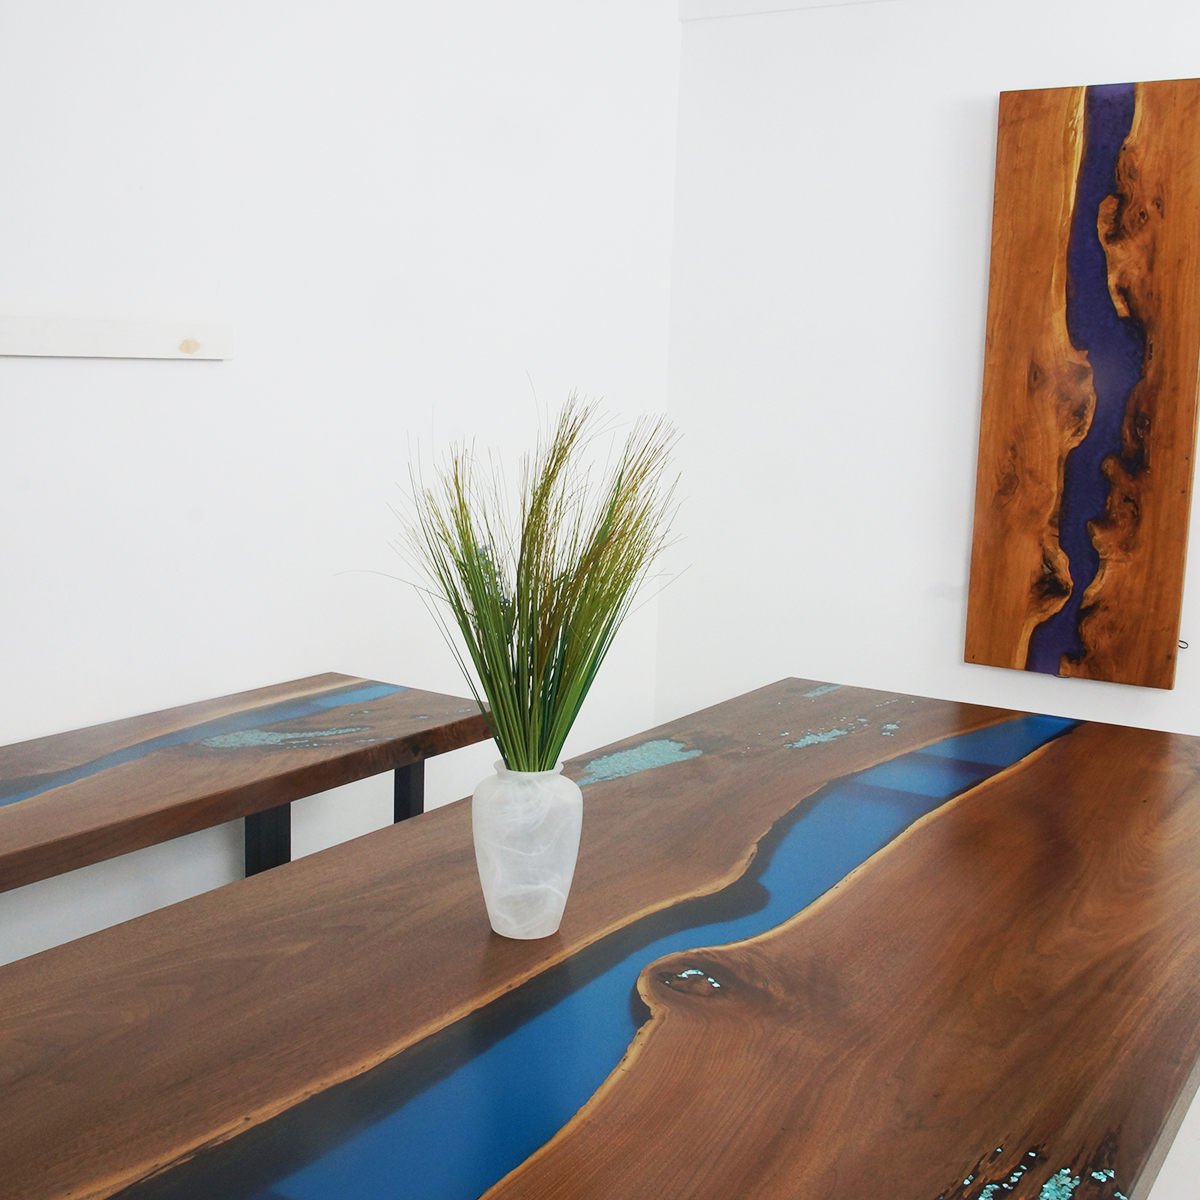 Epoxy Resin River Dining Table With Blue Resin And Turquoise Stones